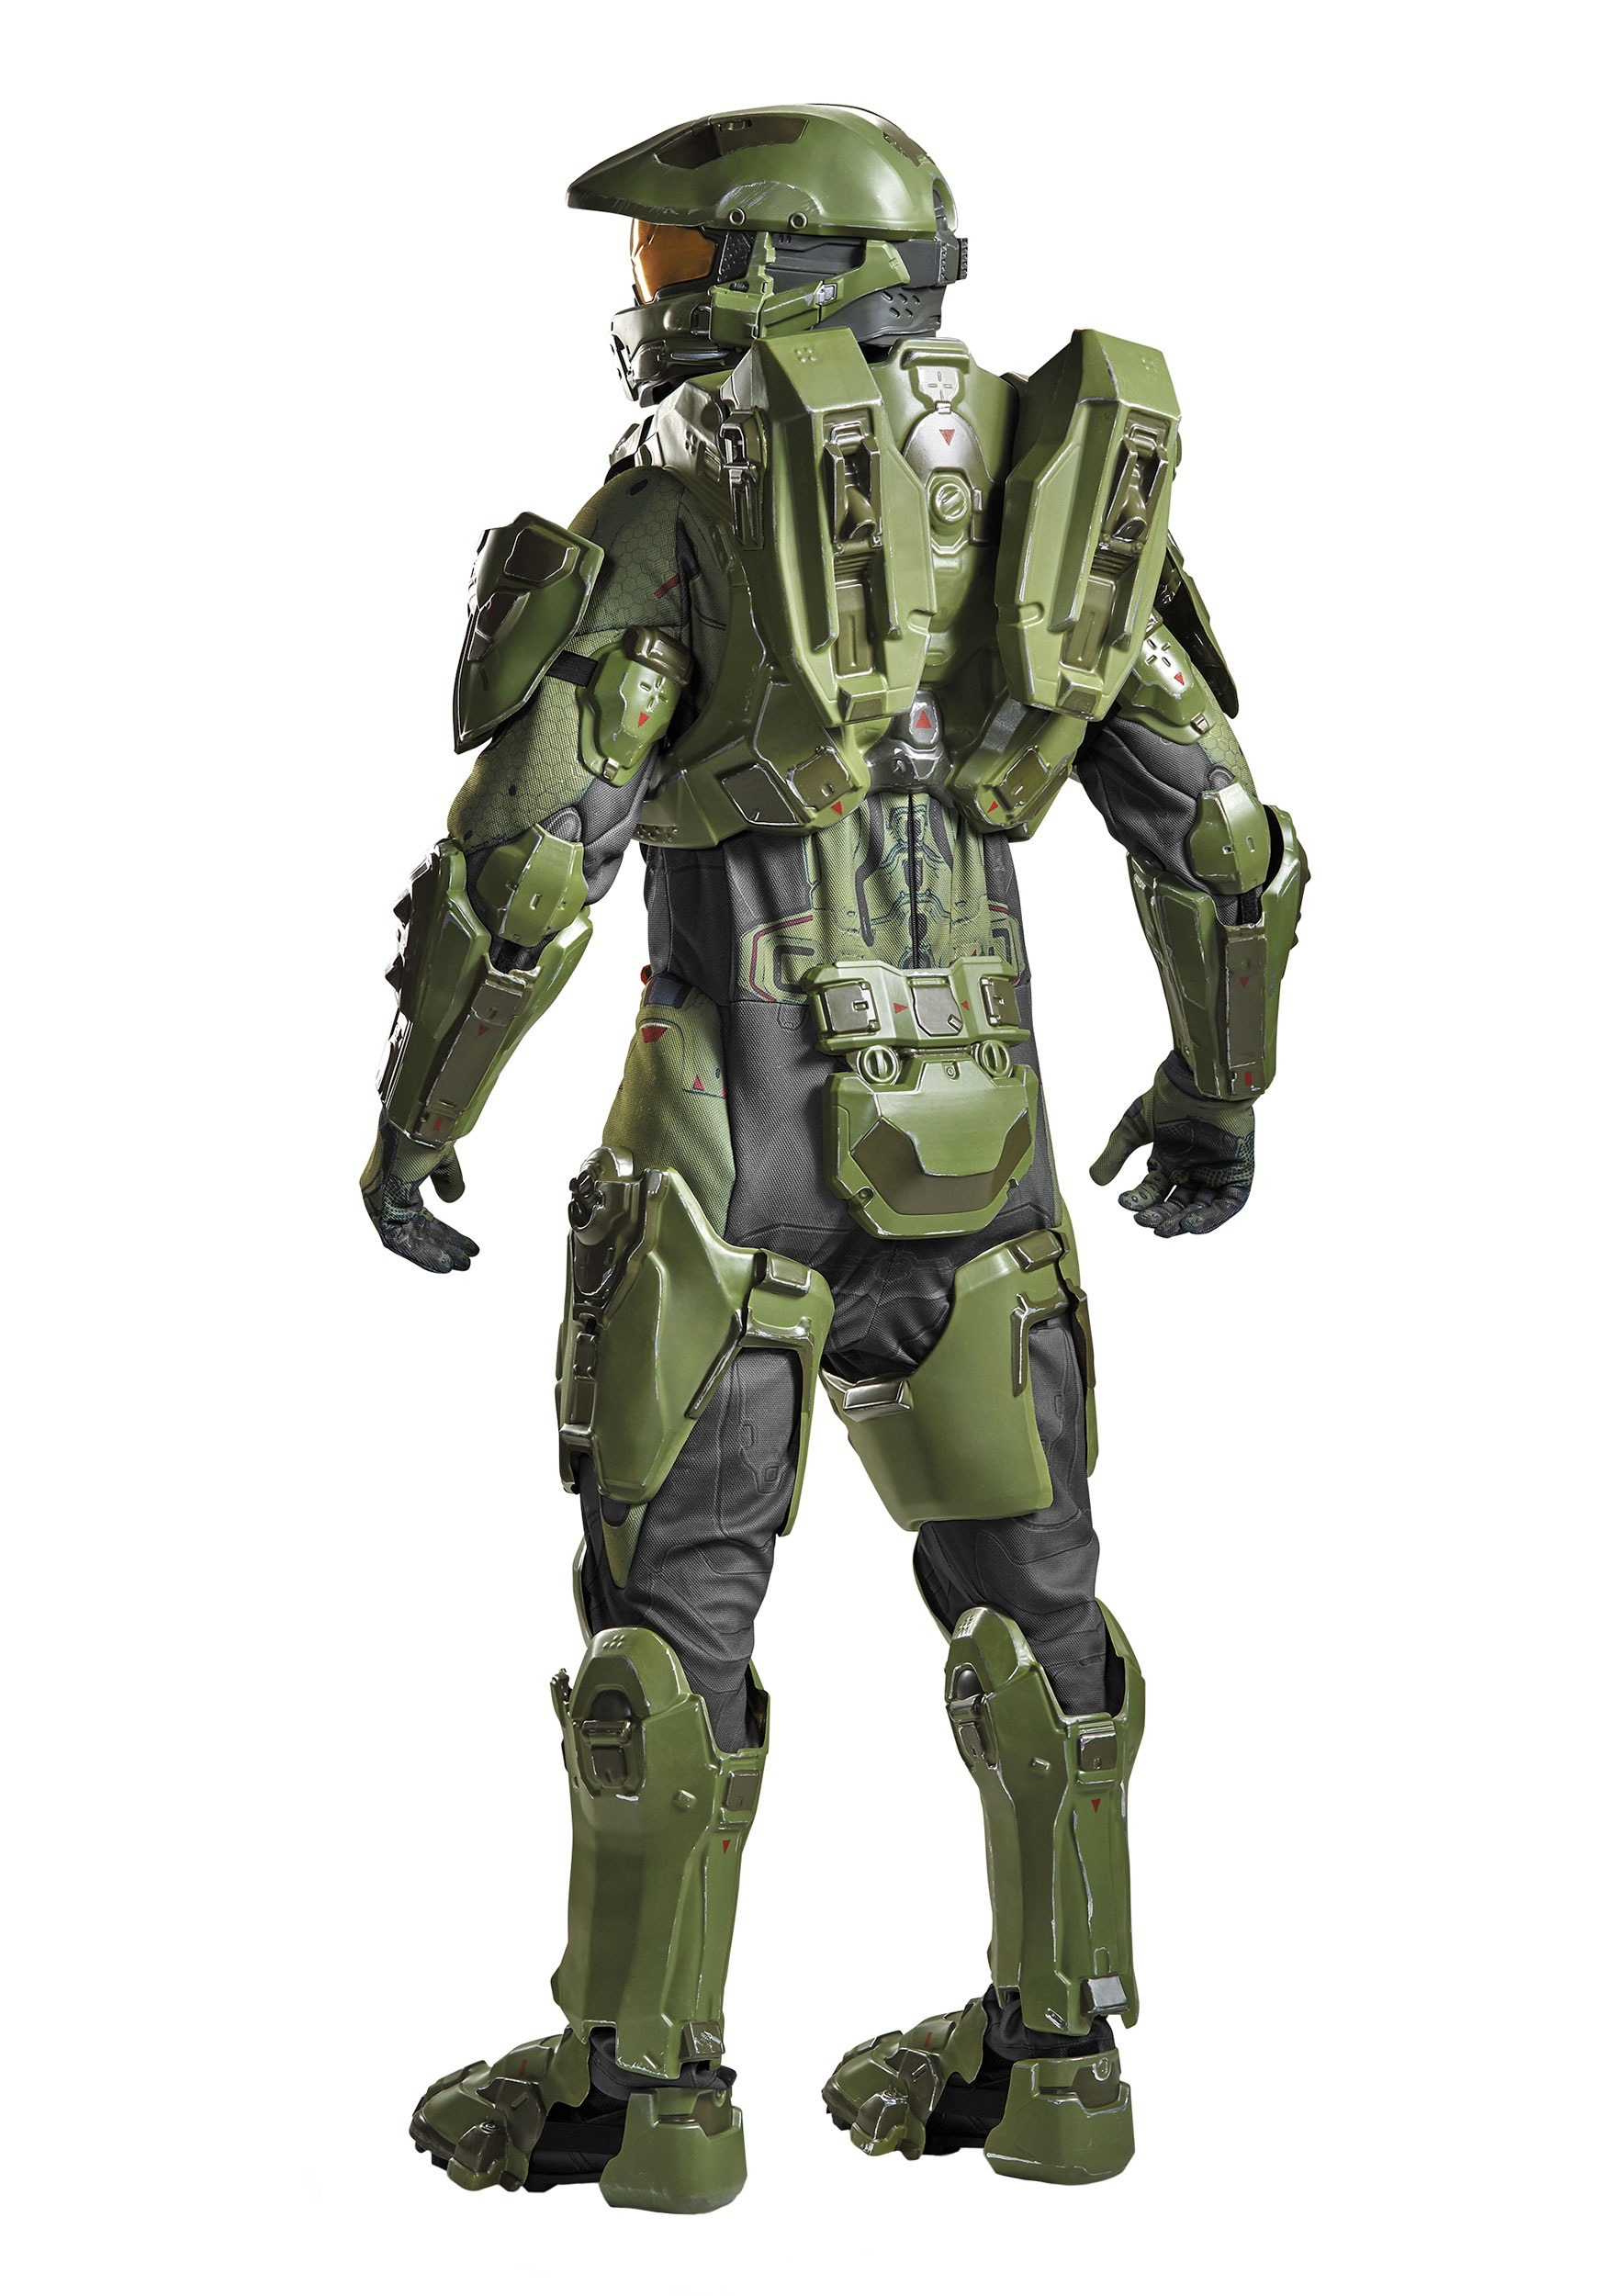 sc 1 st  Halloween Costumes : halloween costumes master chief  - Germanpascual.Com